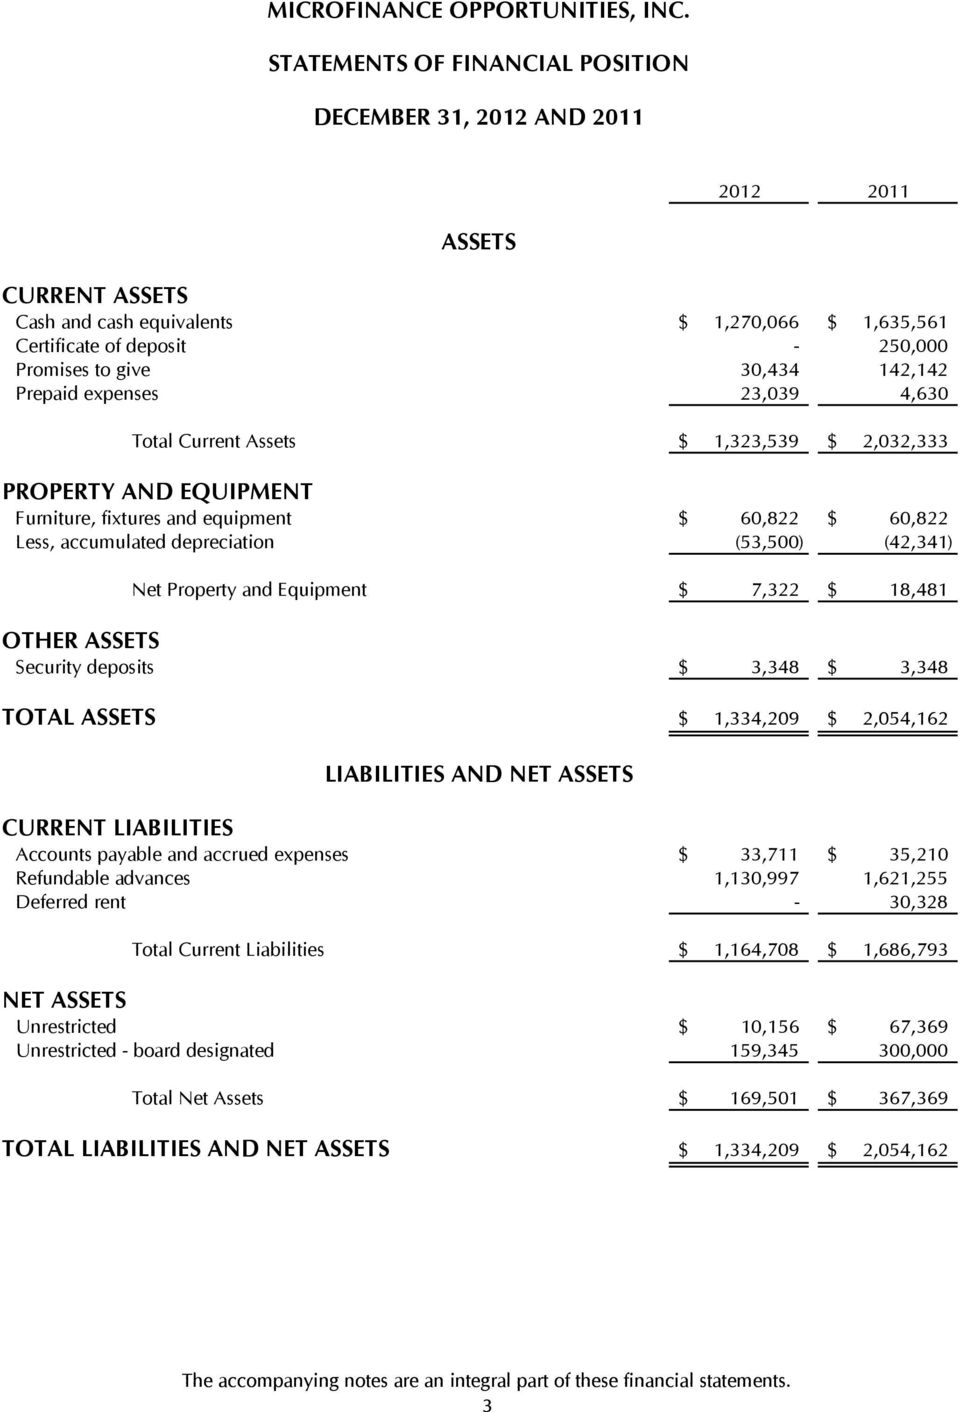 (42,341) Net Property and Equipment $ 7,322 $ 18,481 OTHER ASSETS Security deposits $ 3,348 $ 3,348 TOTAL ASSETS 1,334,209 CURRENT LIABILITIES $ $ 2,054,162 Accounts payable and accrued expenses $